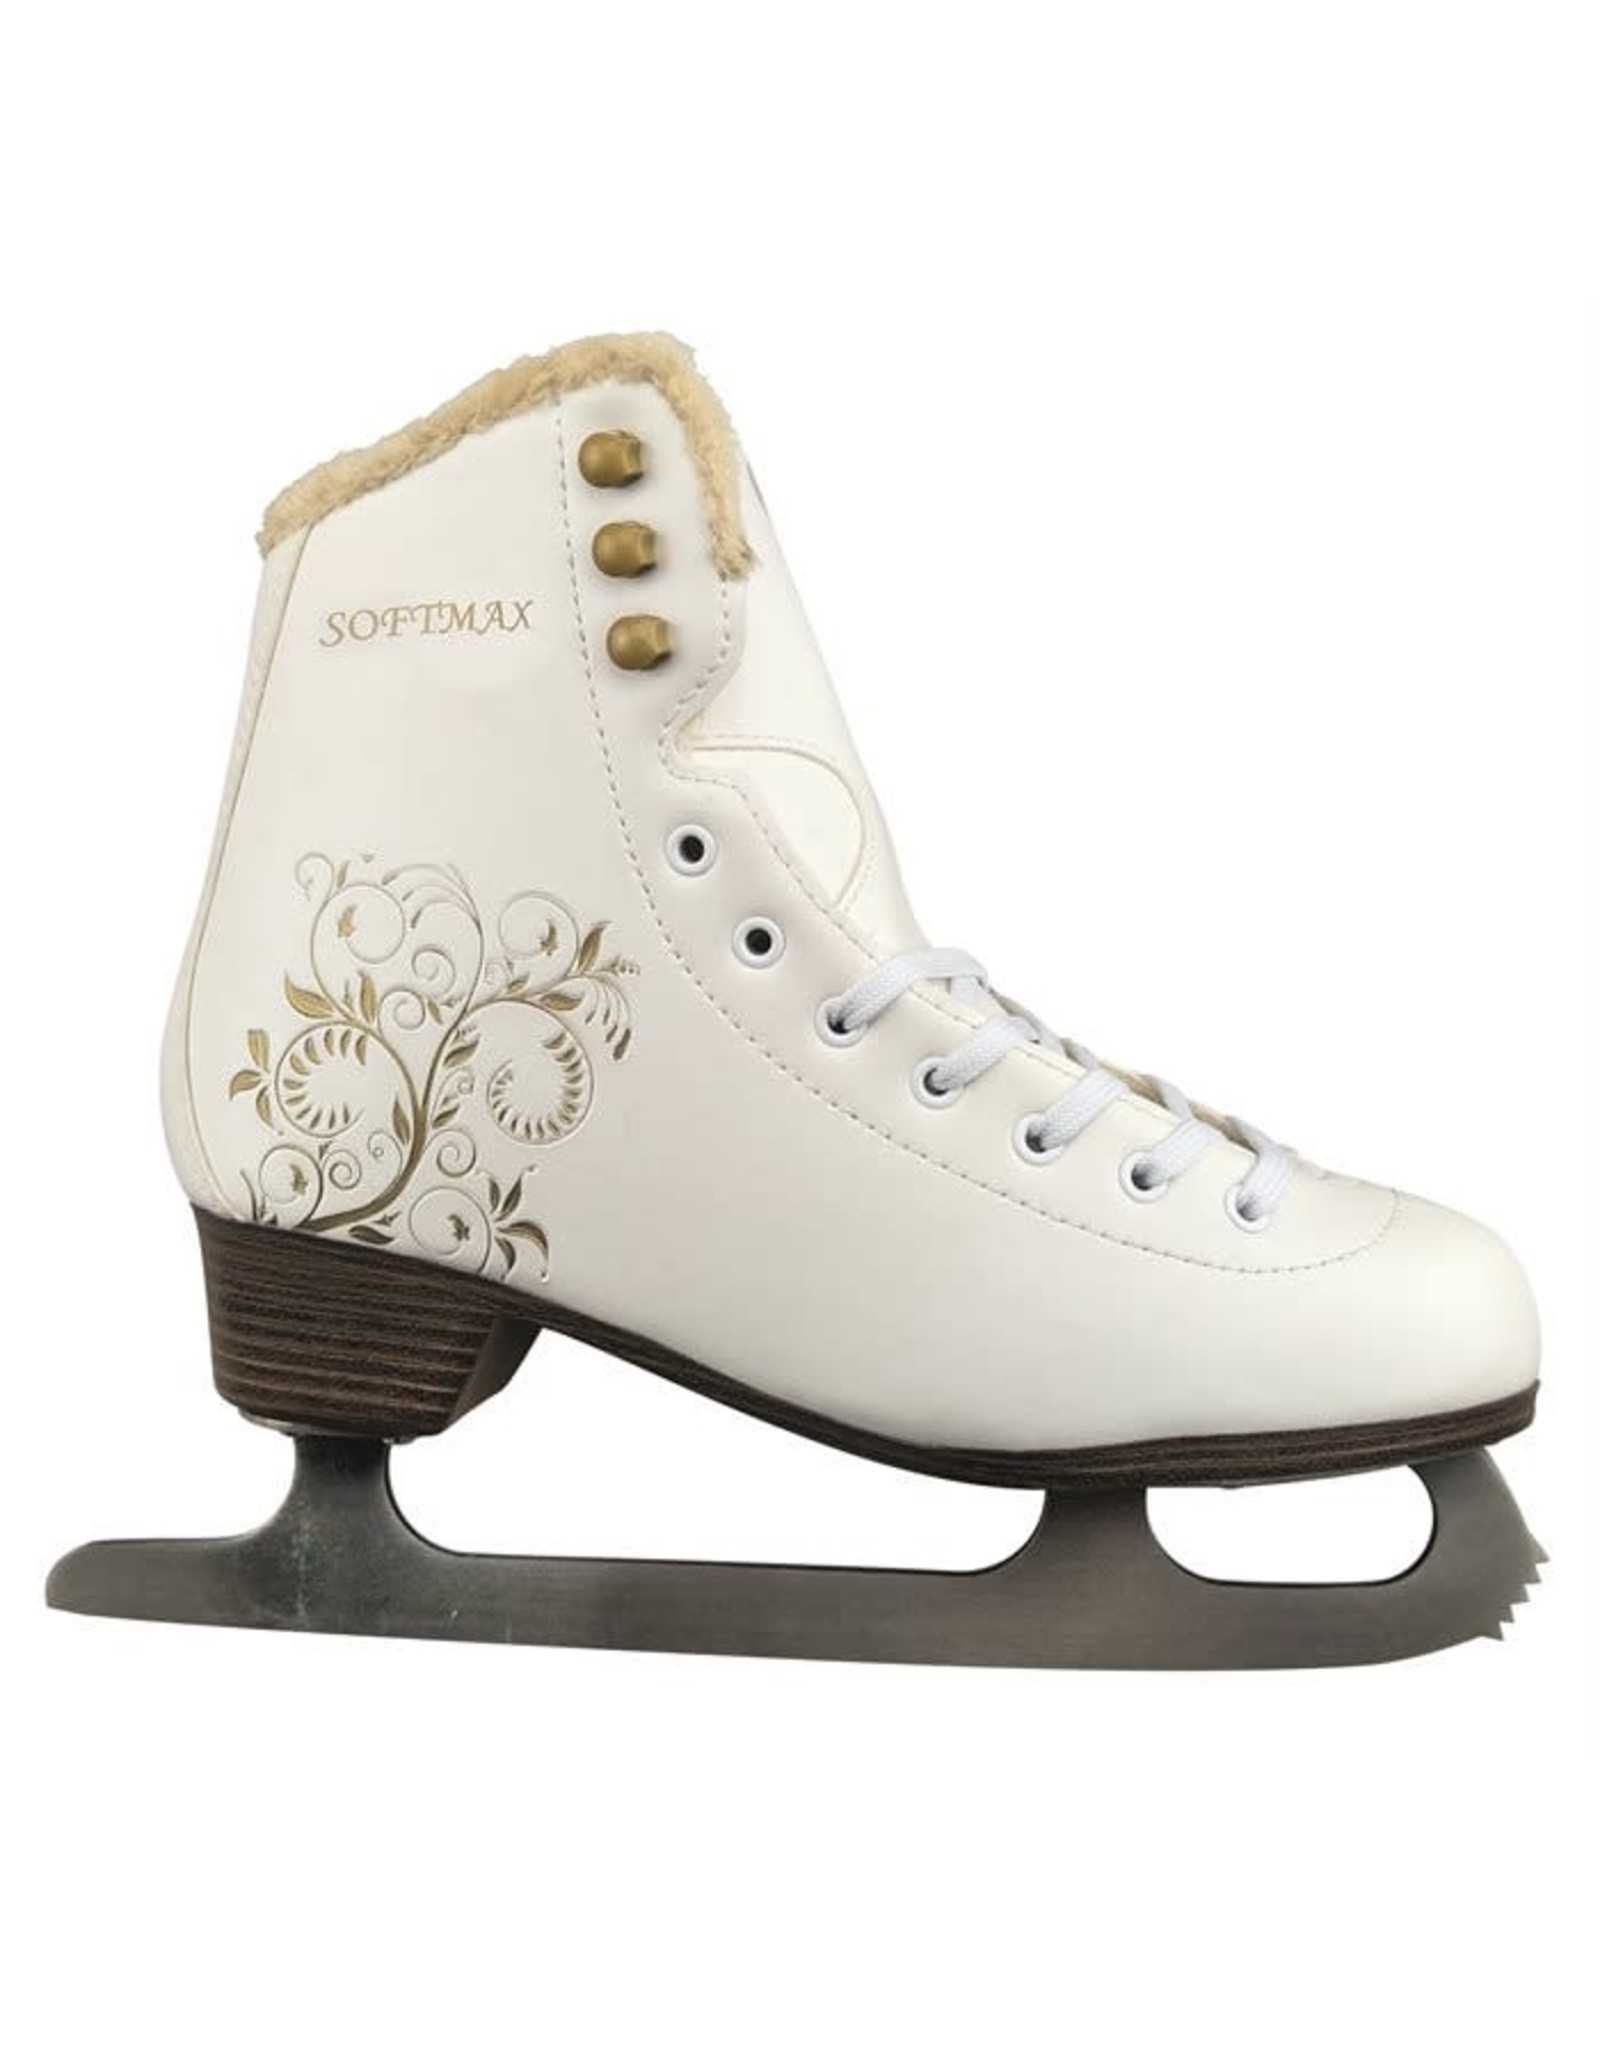 Softmax Prestige women ice skate with Thinsulate